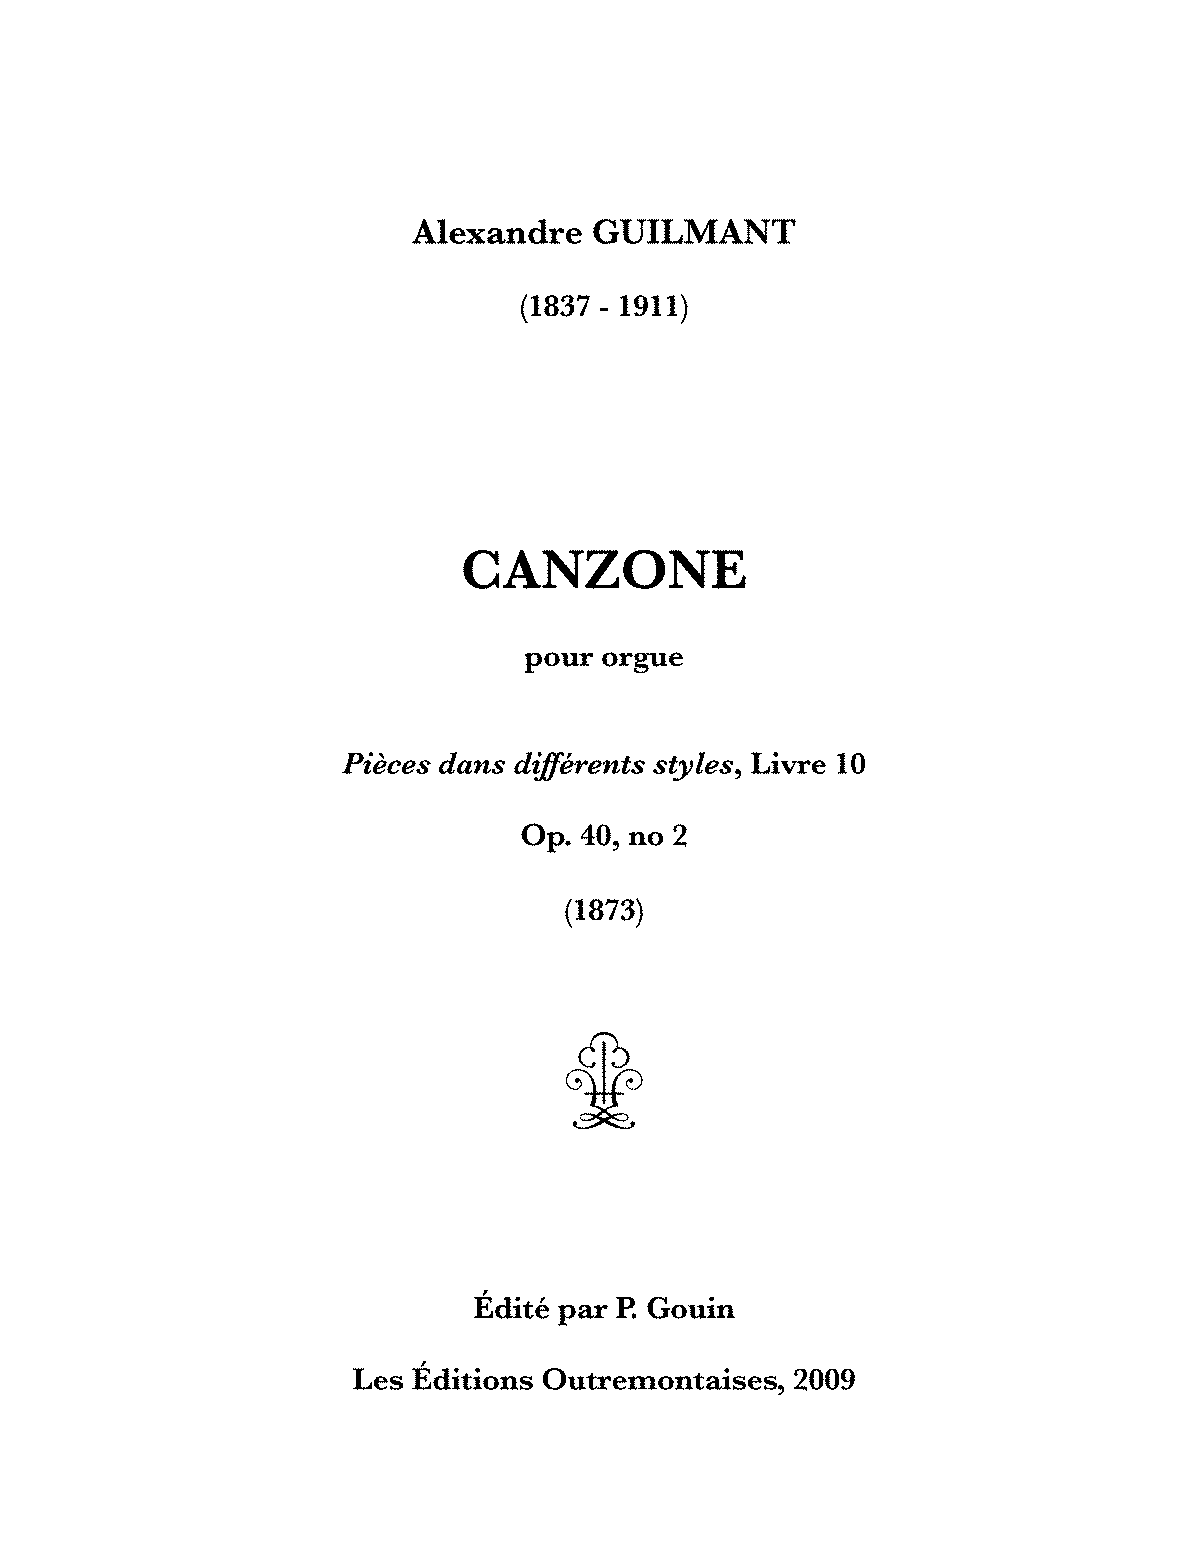 WIMA.7977-Guilmant Canzona Op 40 2.pdf